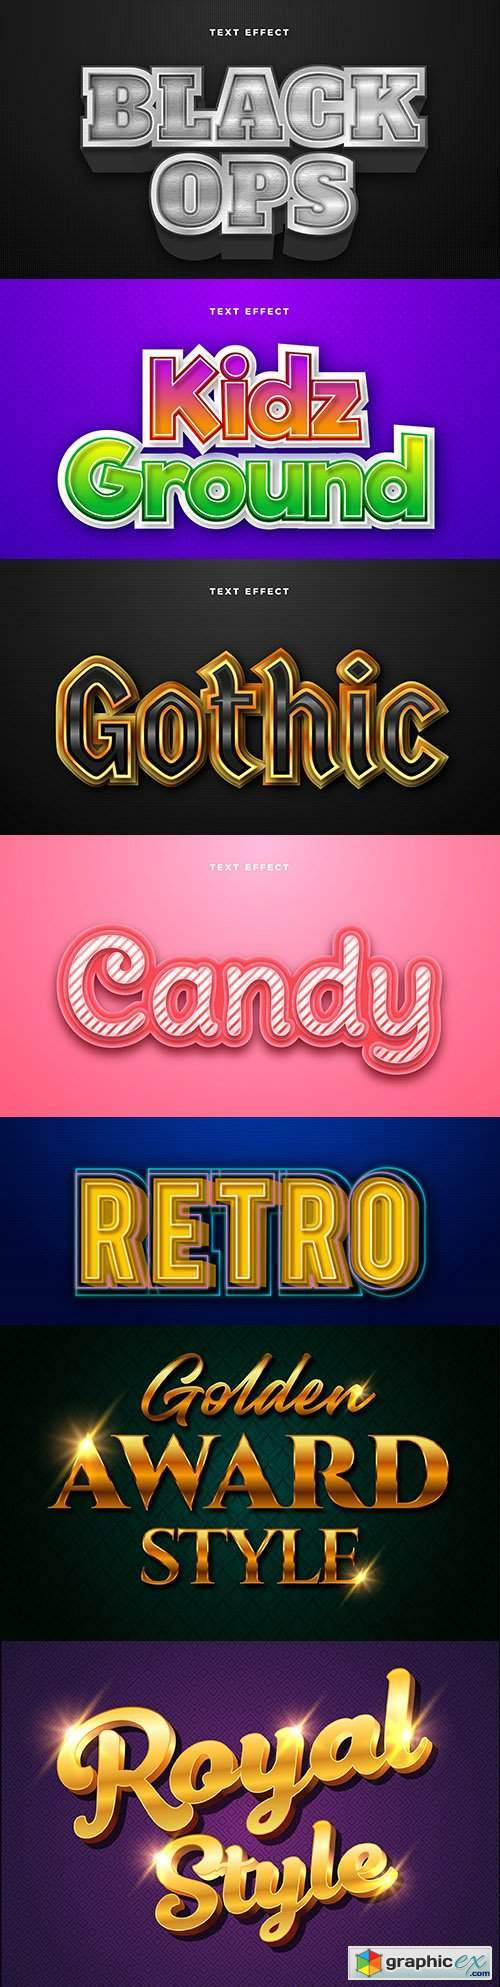 Editable font effect text collection illustration design 97